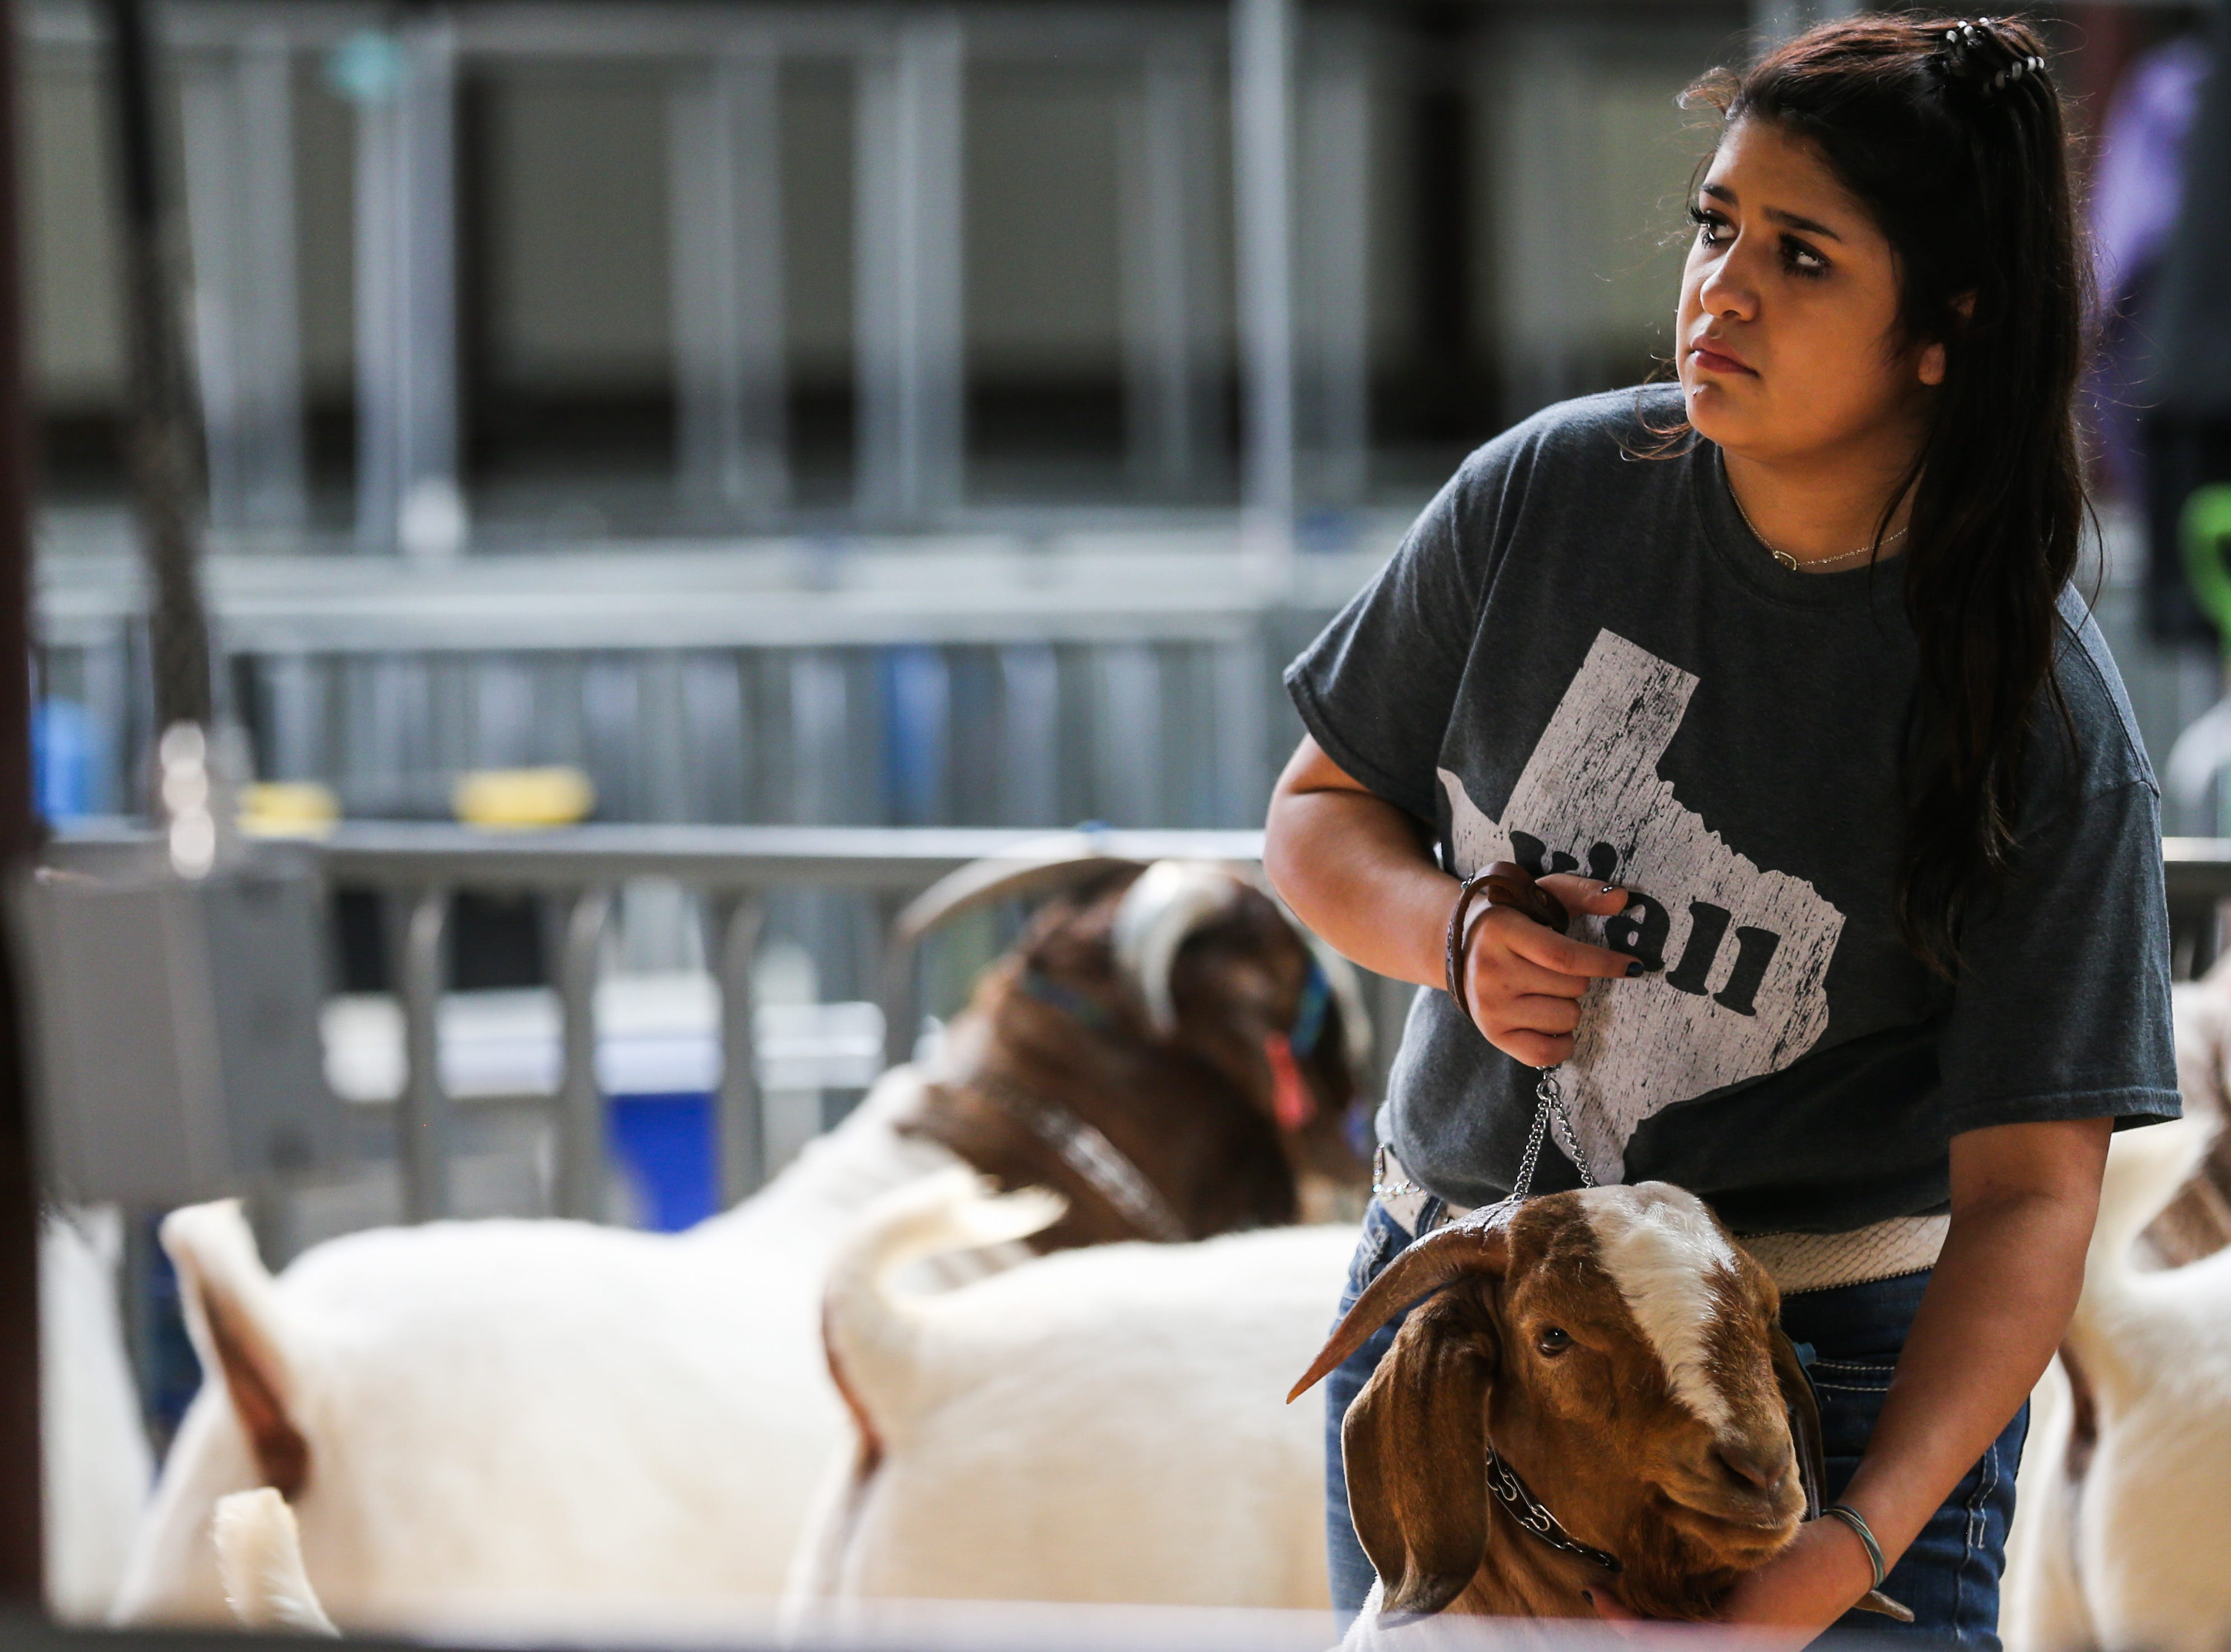 Khira Santiago from San Angelo gets ready to enter the arena for judging during the open boer goat show during San Angelo Stock Show & Rodeo Tuesday, Feb. 5, 2019, at the at the First Financial Pavilion.